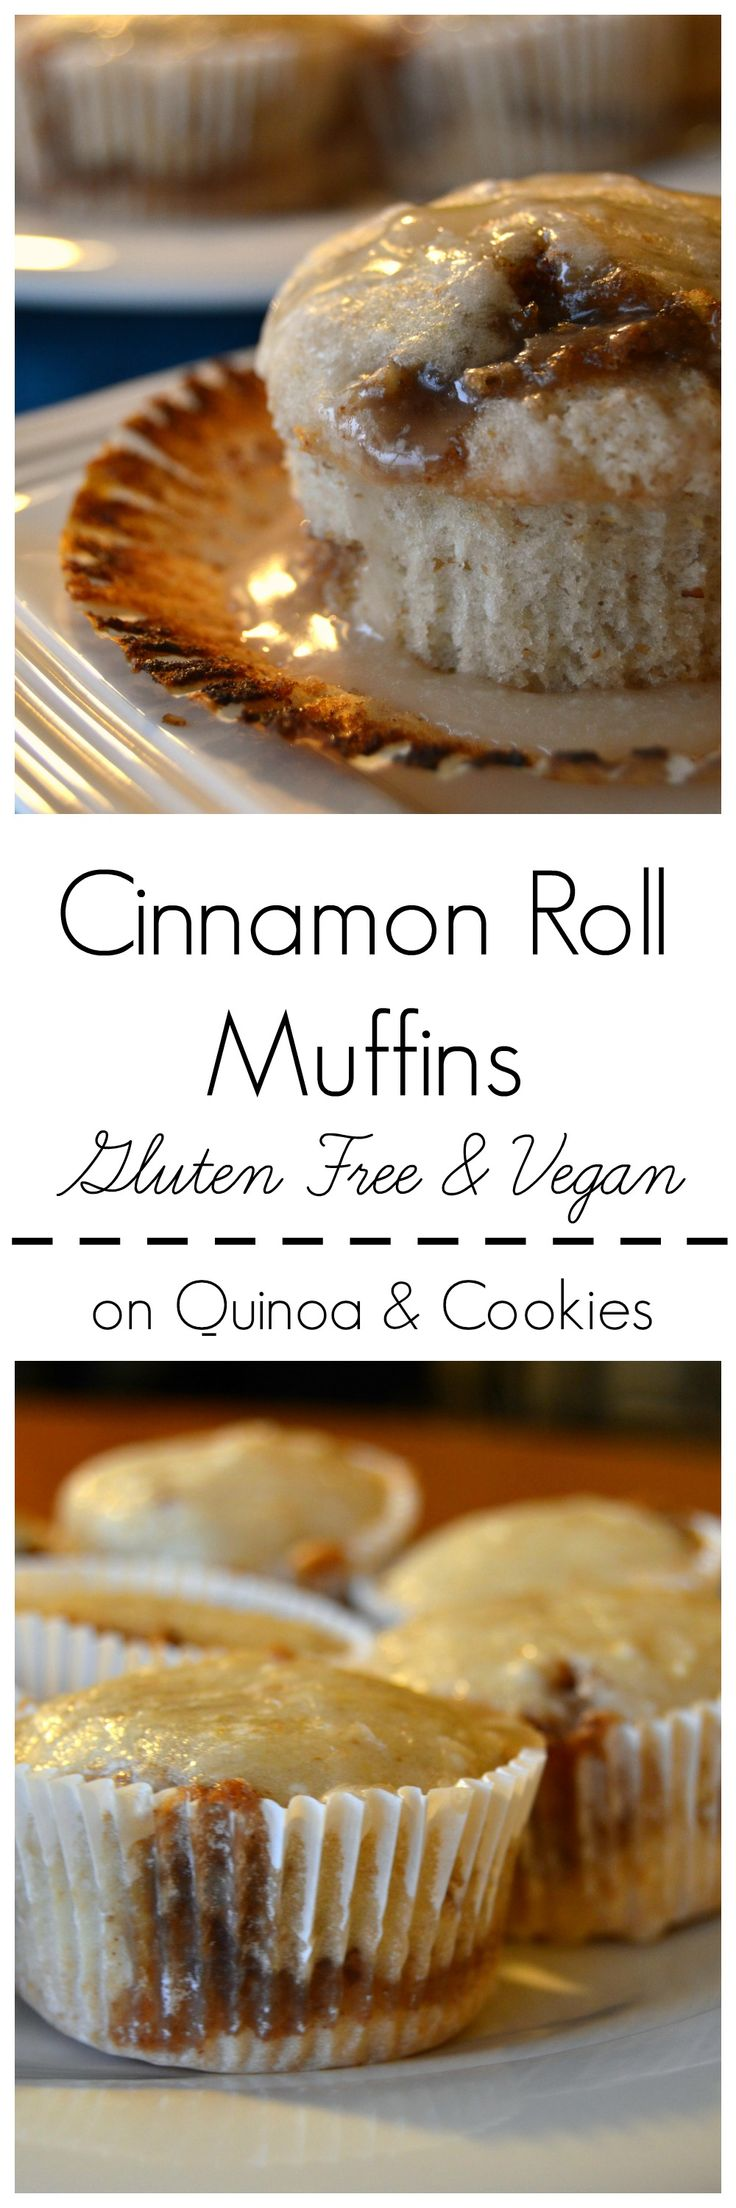 These cinnamon roll muffins taste just like the center of a cinnamon bun, without having to spend time rolling them out and letting them rise! Gluten free and vegan, on Quinoa and Cookies